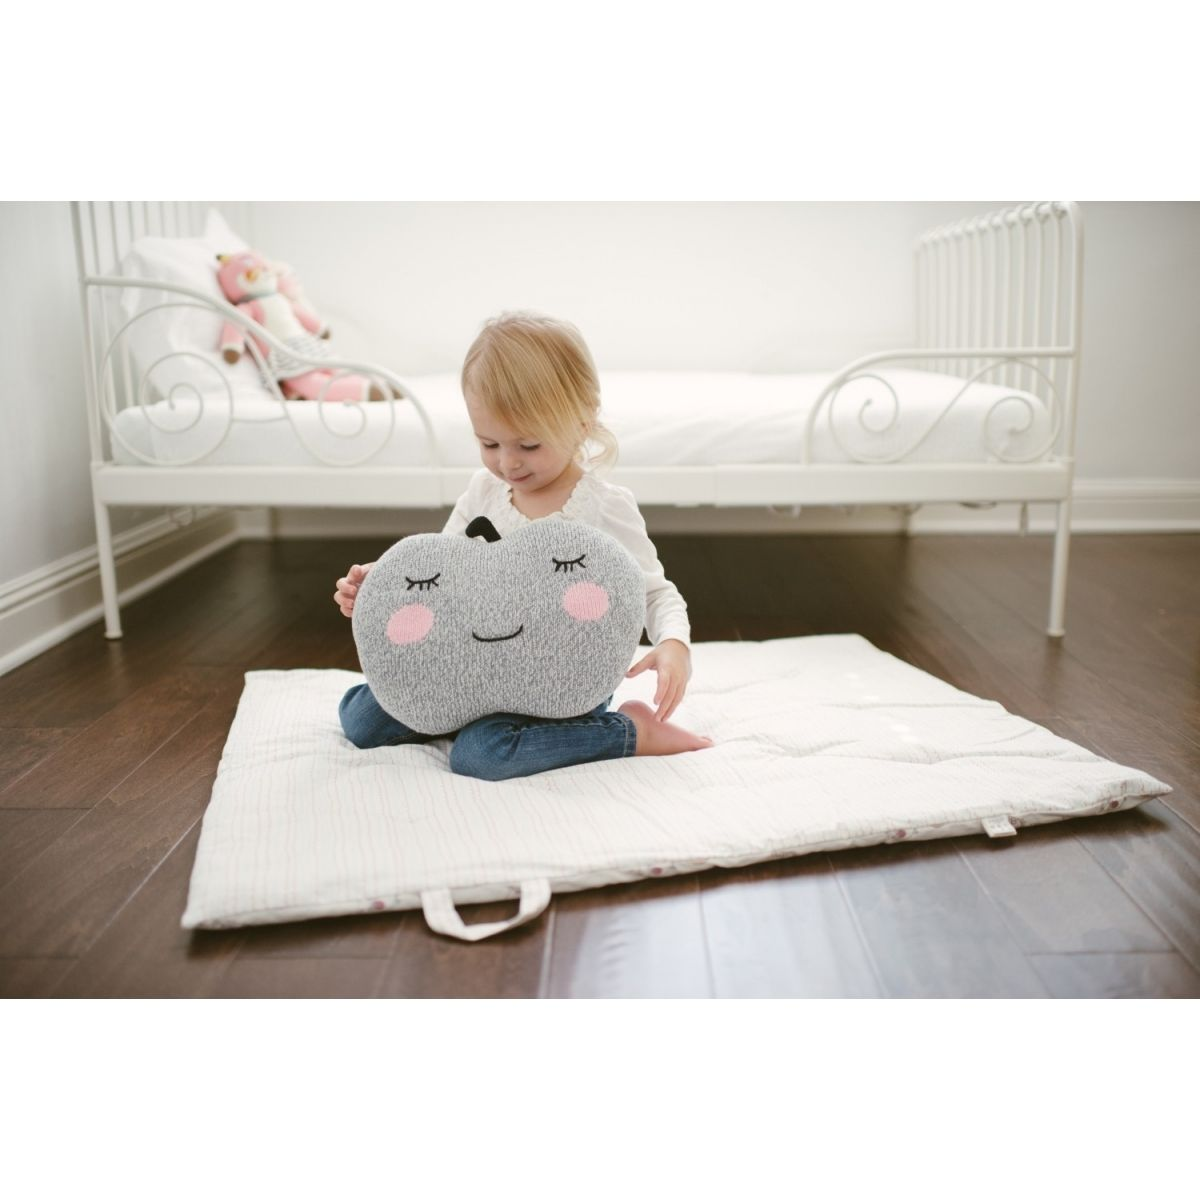 Blabla Kids Knit Pillow Apple grey